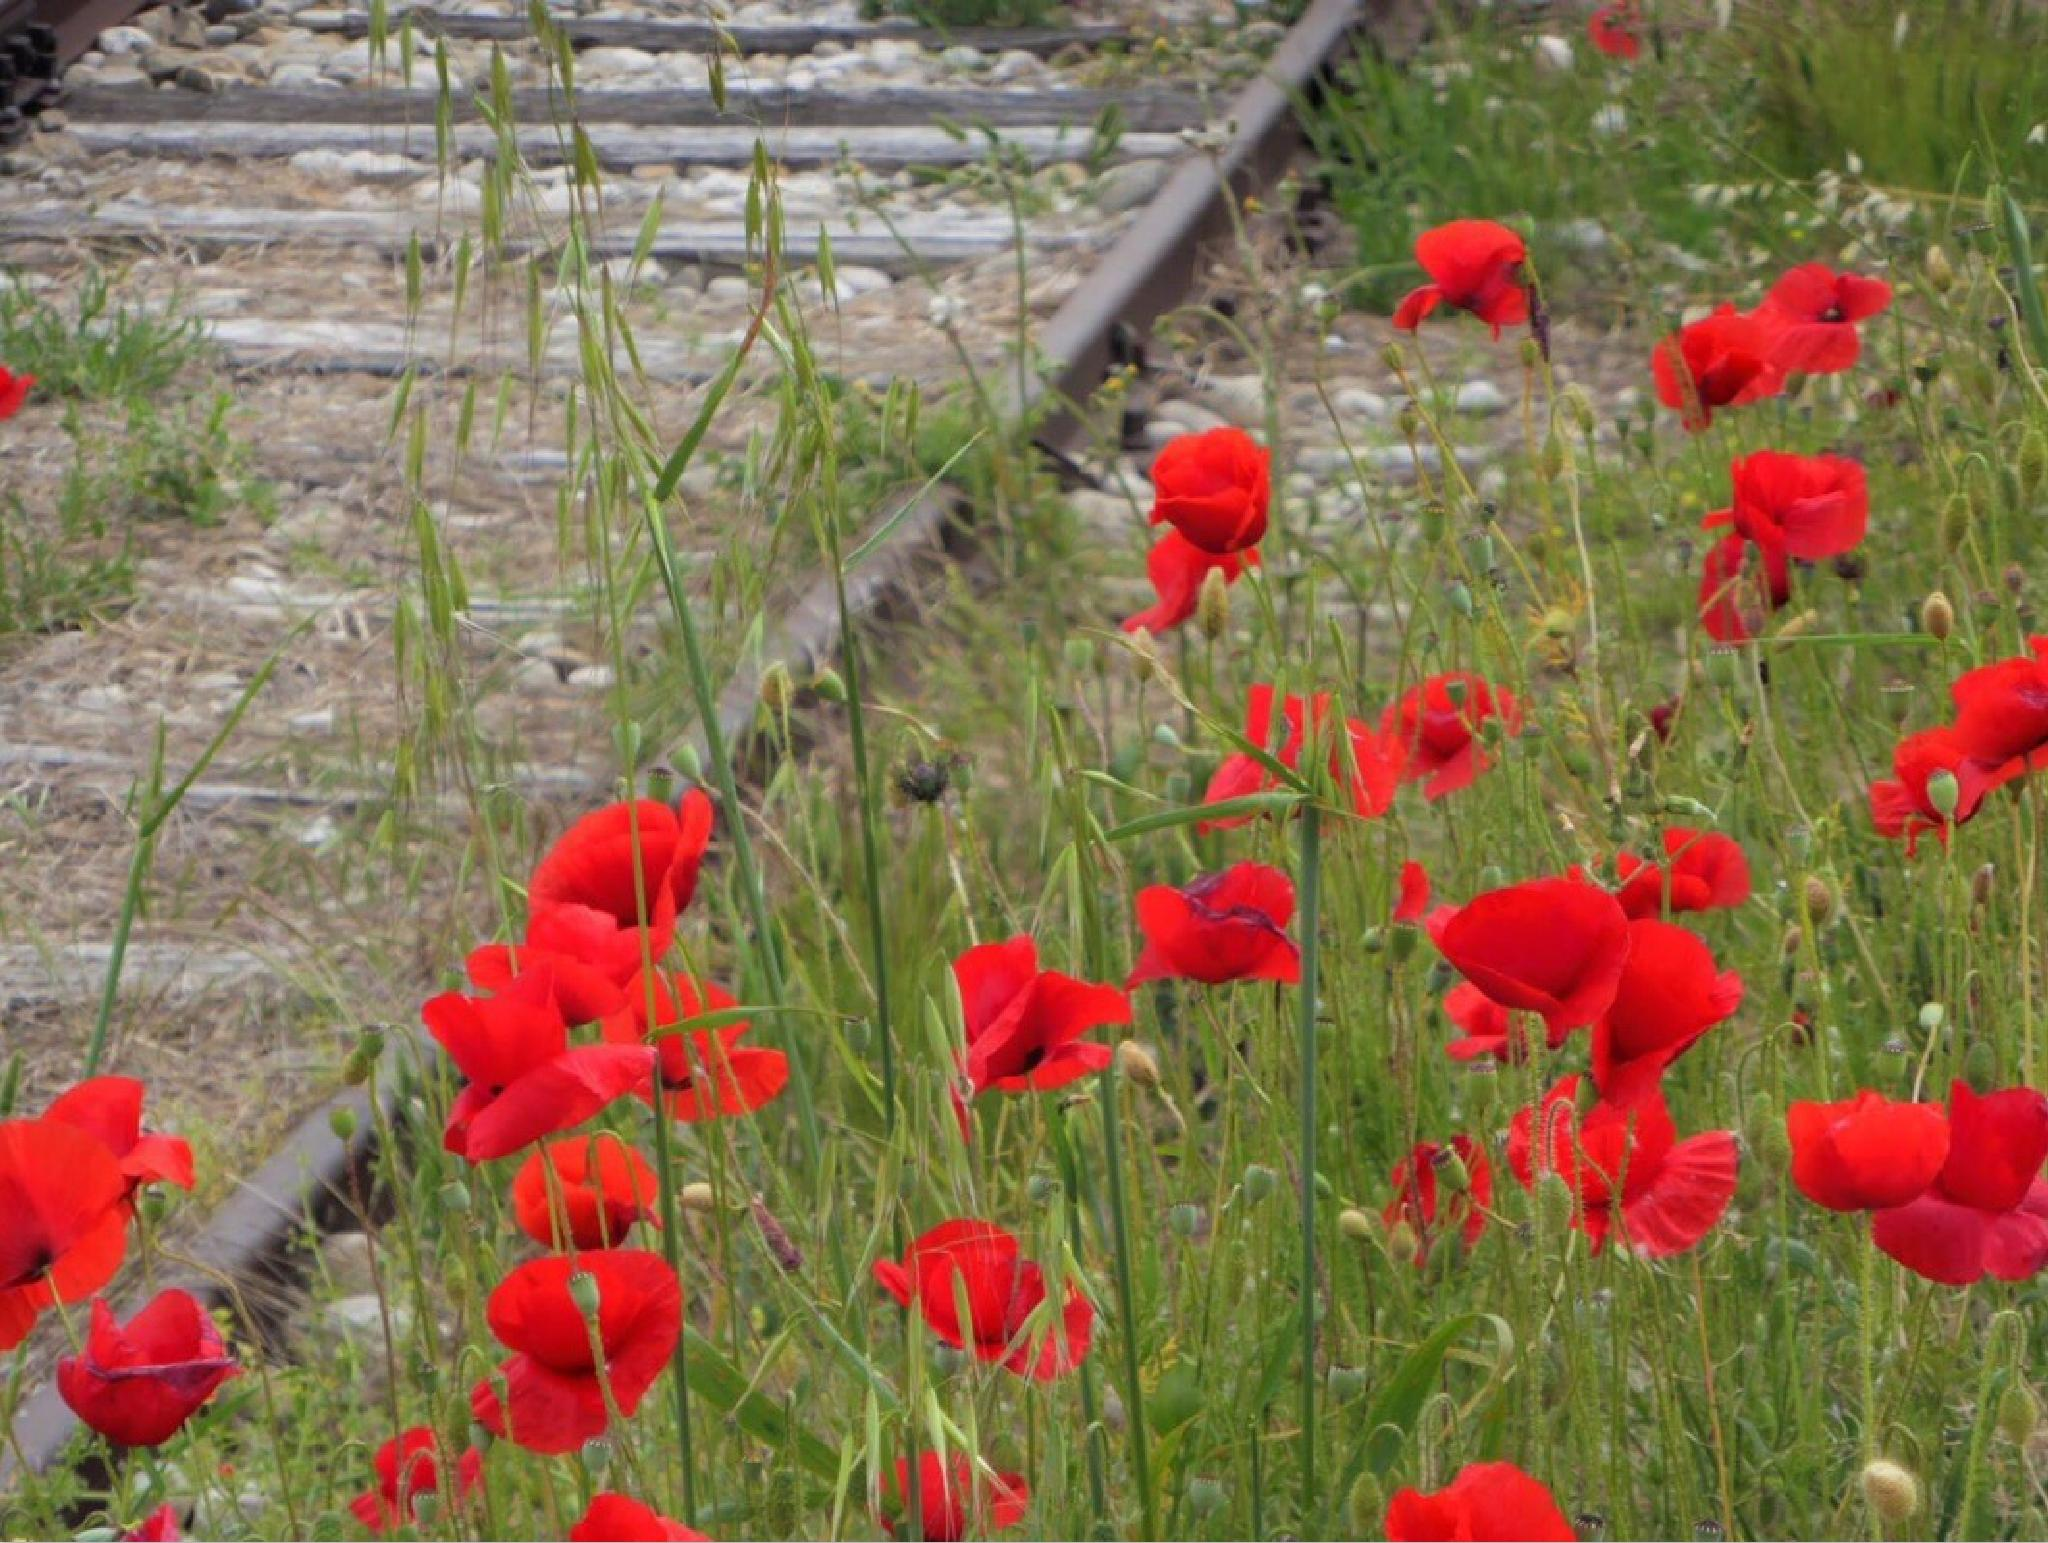 Old track train and poppies by mirella.barteloni